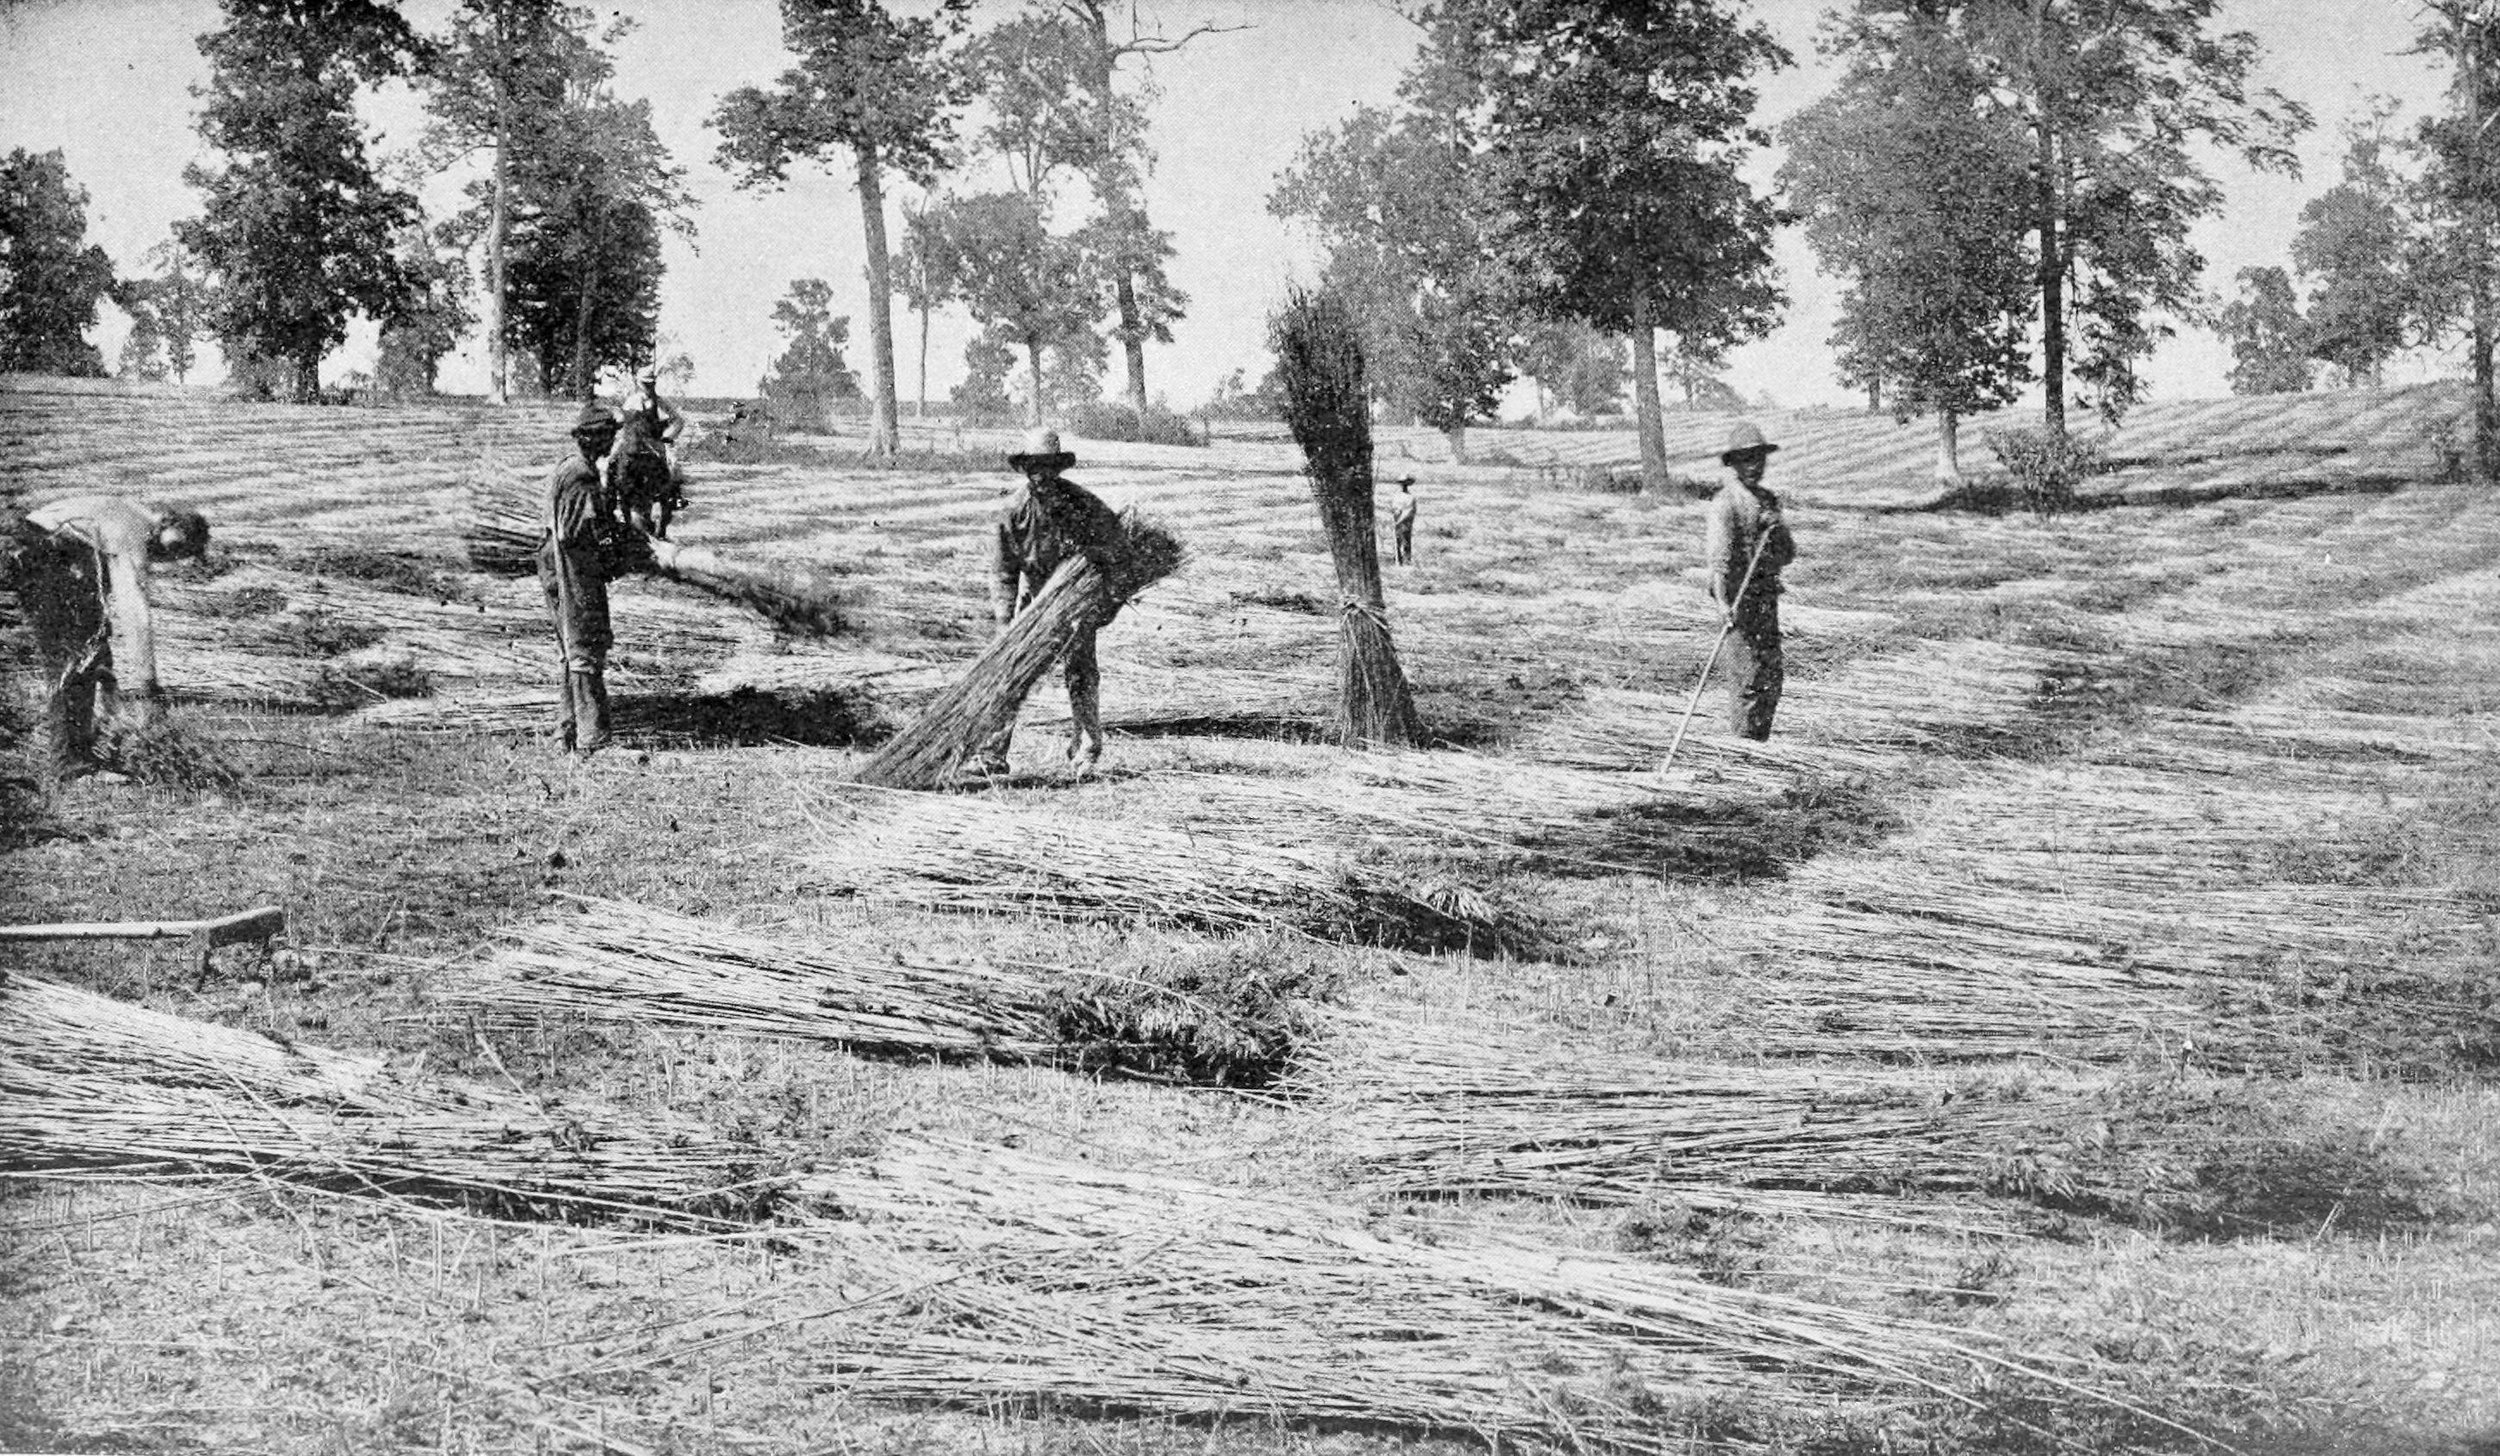 Hemp farmers in Kentucky, USA 1898